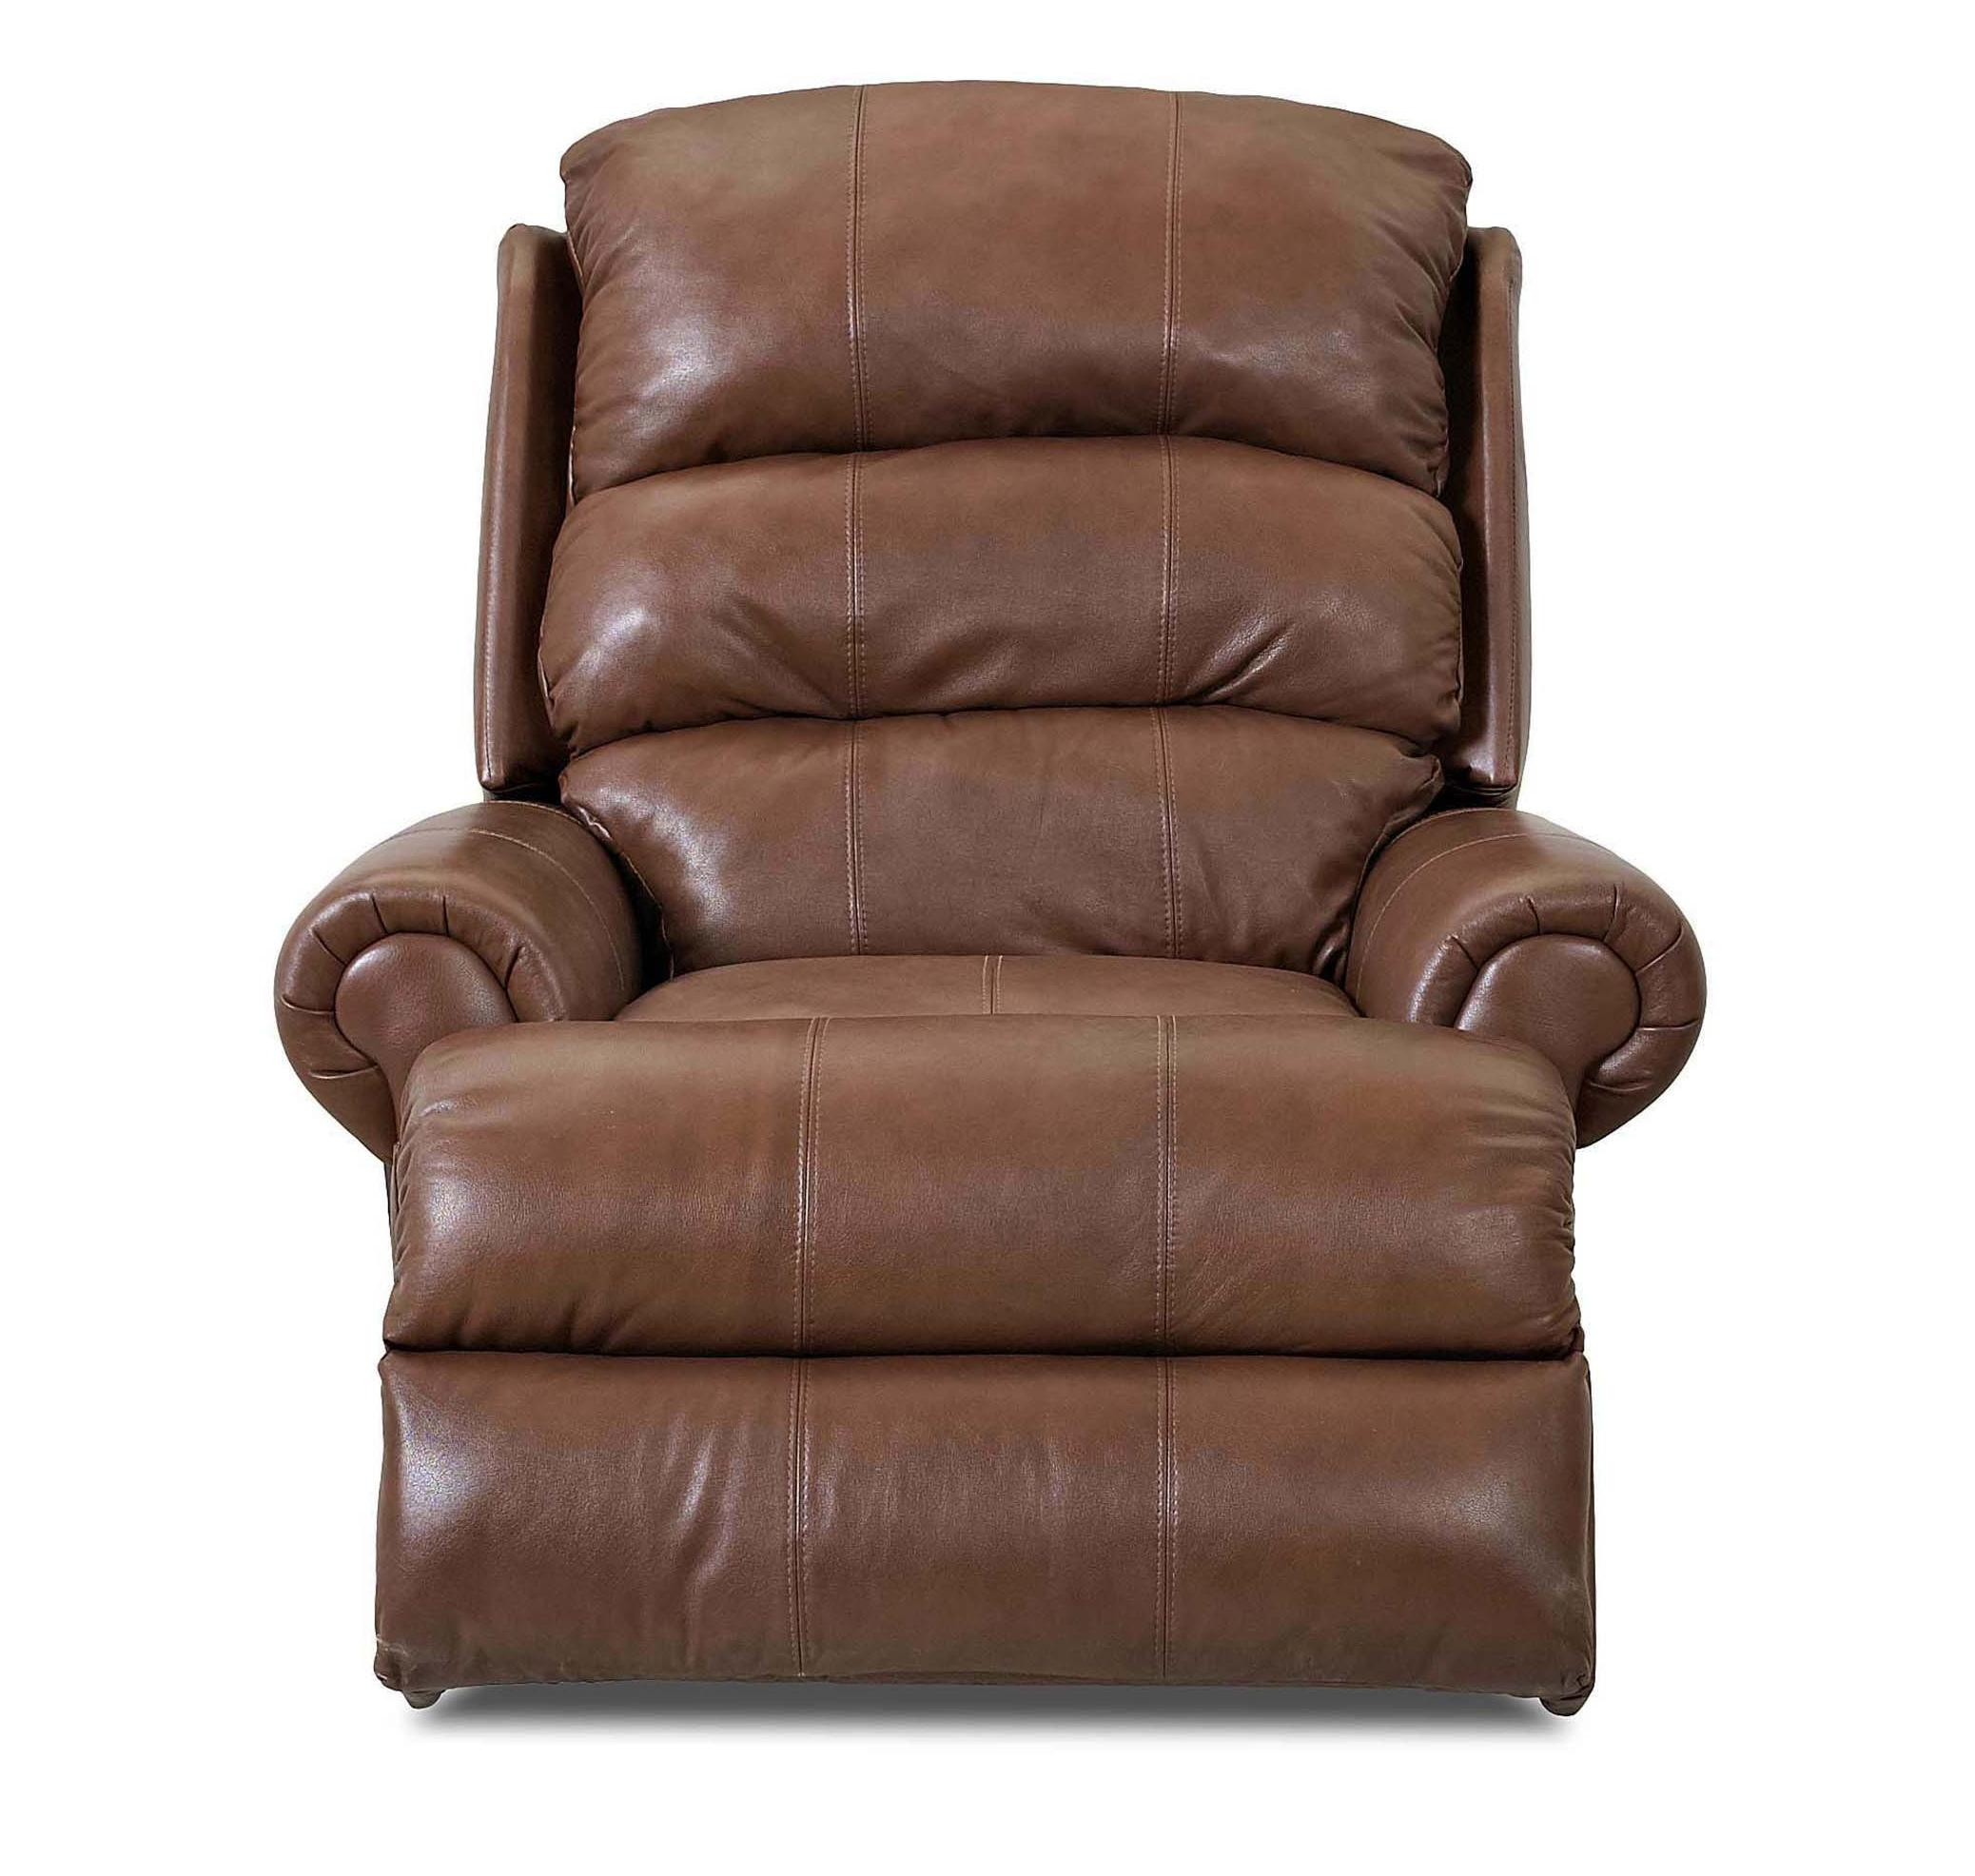 Klaussner Norman Transitional Swivel Glider Reclining Chair - Item Number: LV91003H SGRC